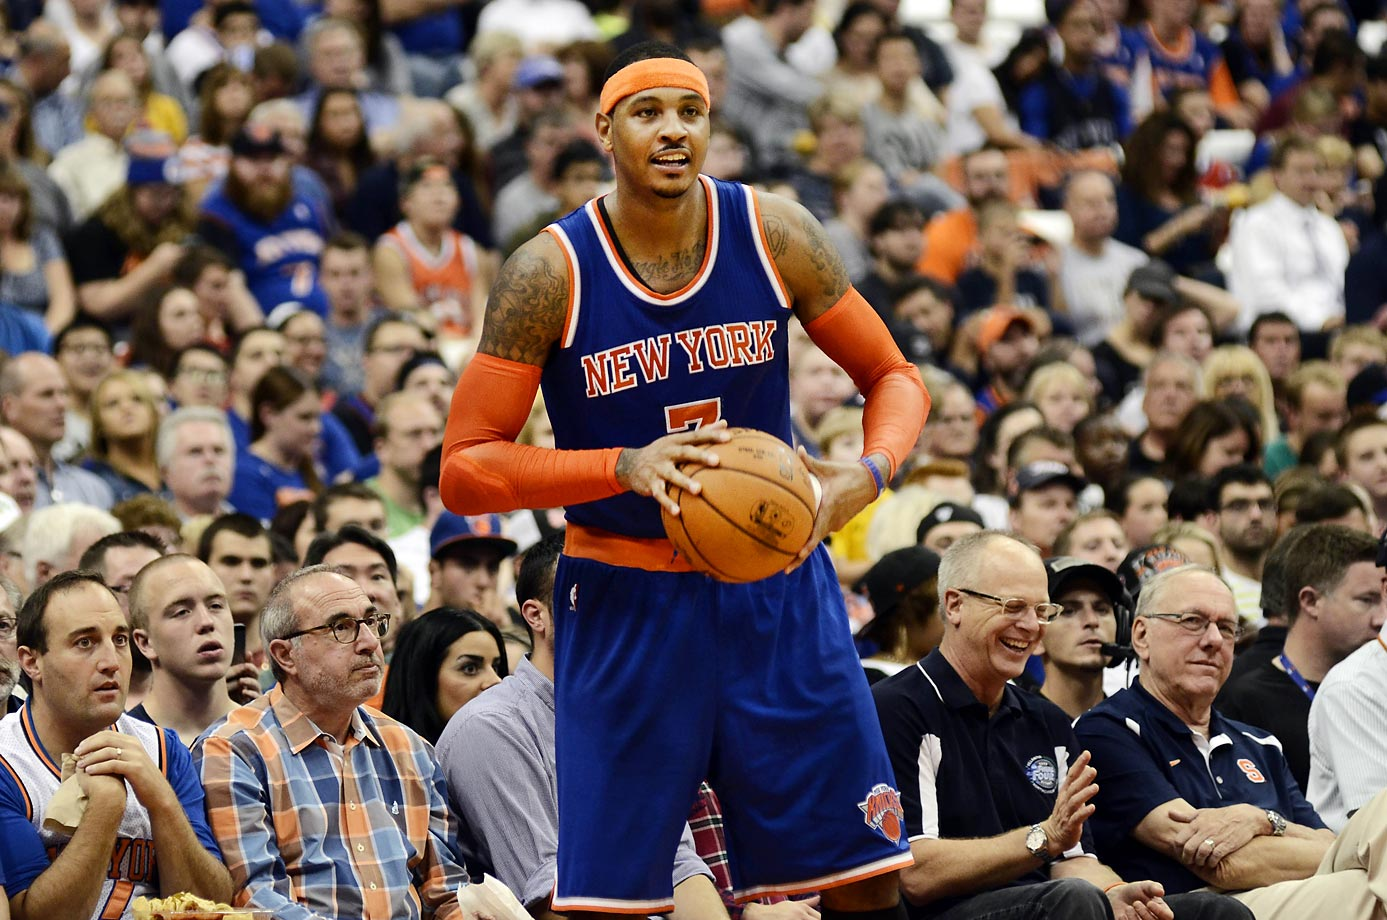 New York Knicks Carmelo Anthony playing the 76ers at the Carrier Dome with his college coach, Jim Boeheim, watching.